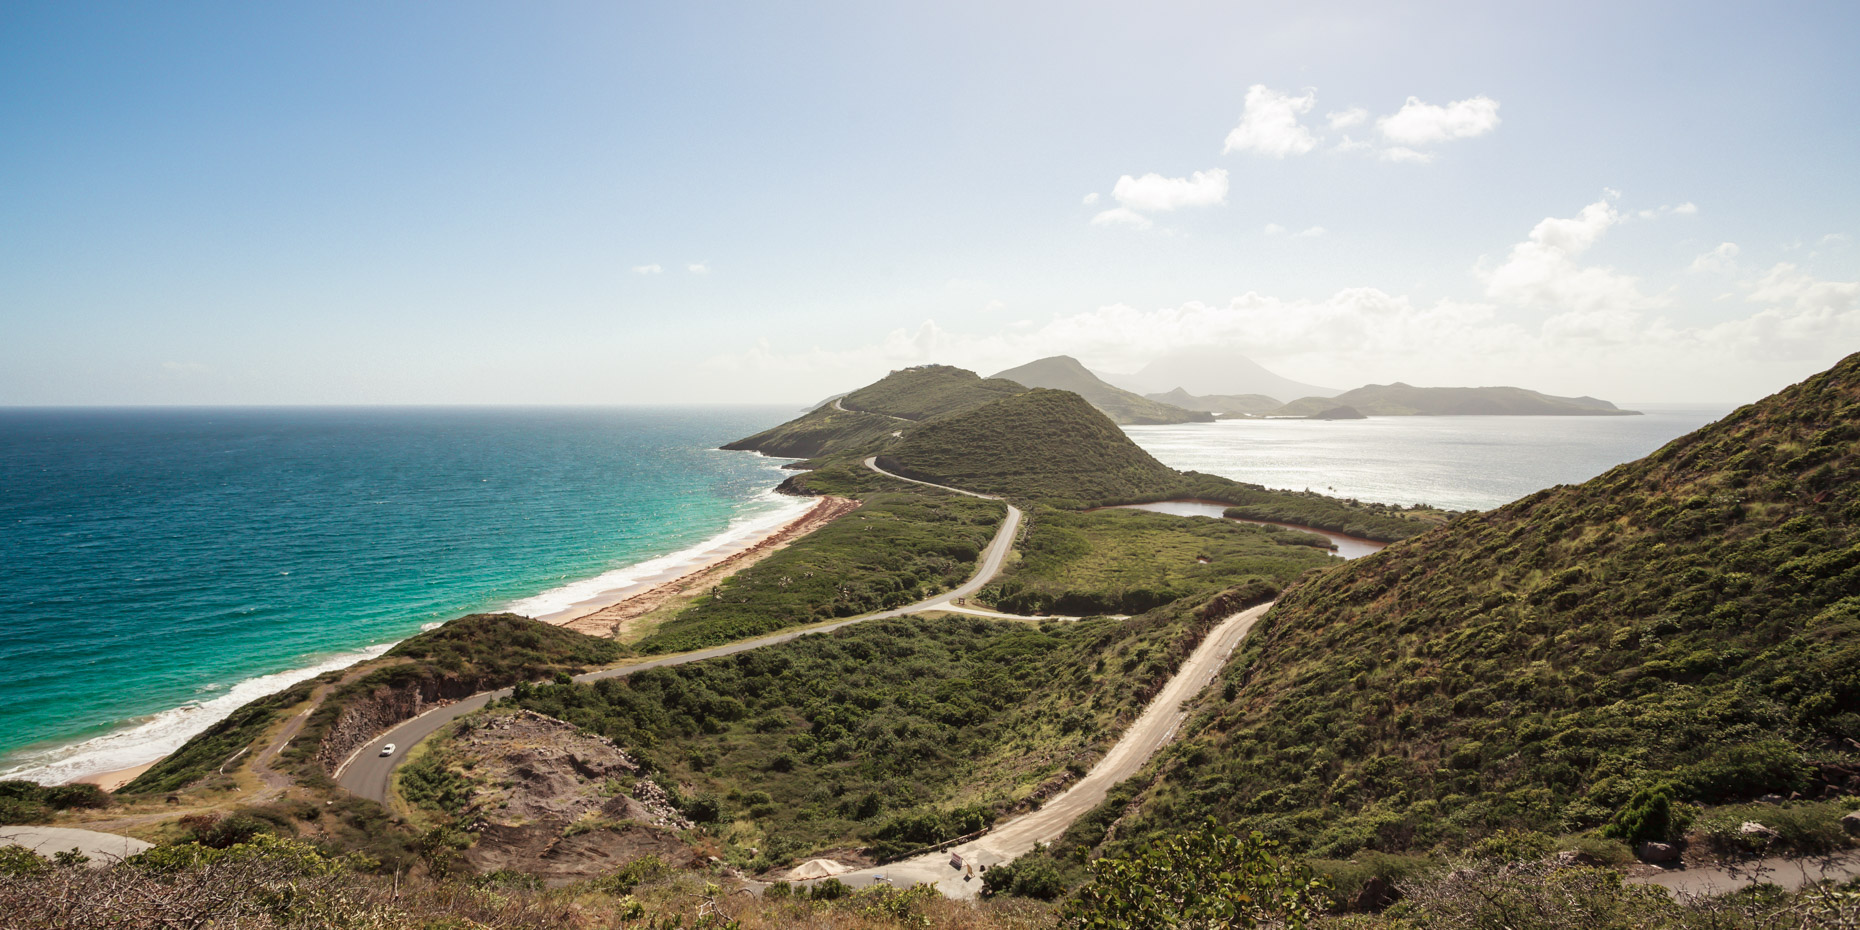 St Kitts hill Caribean Sea Atlantic Ocean